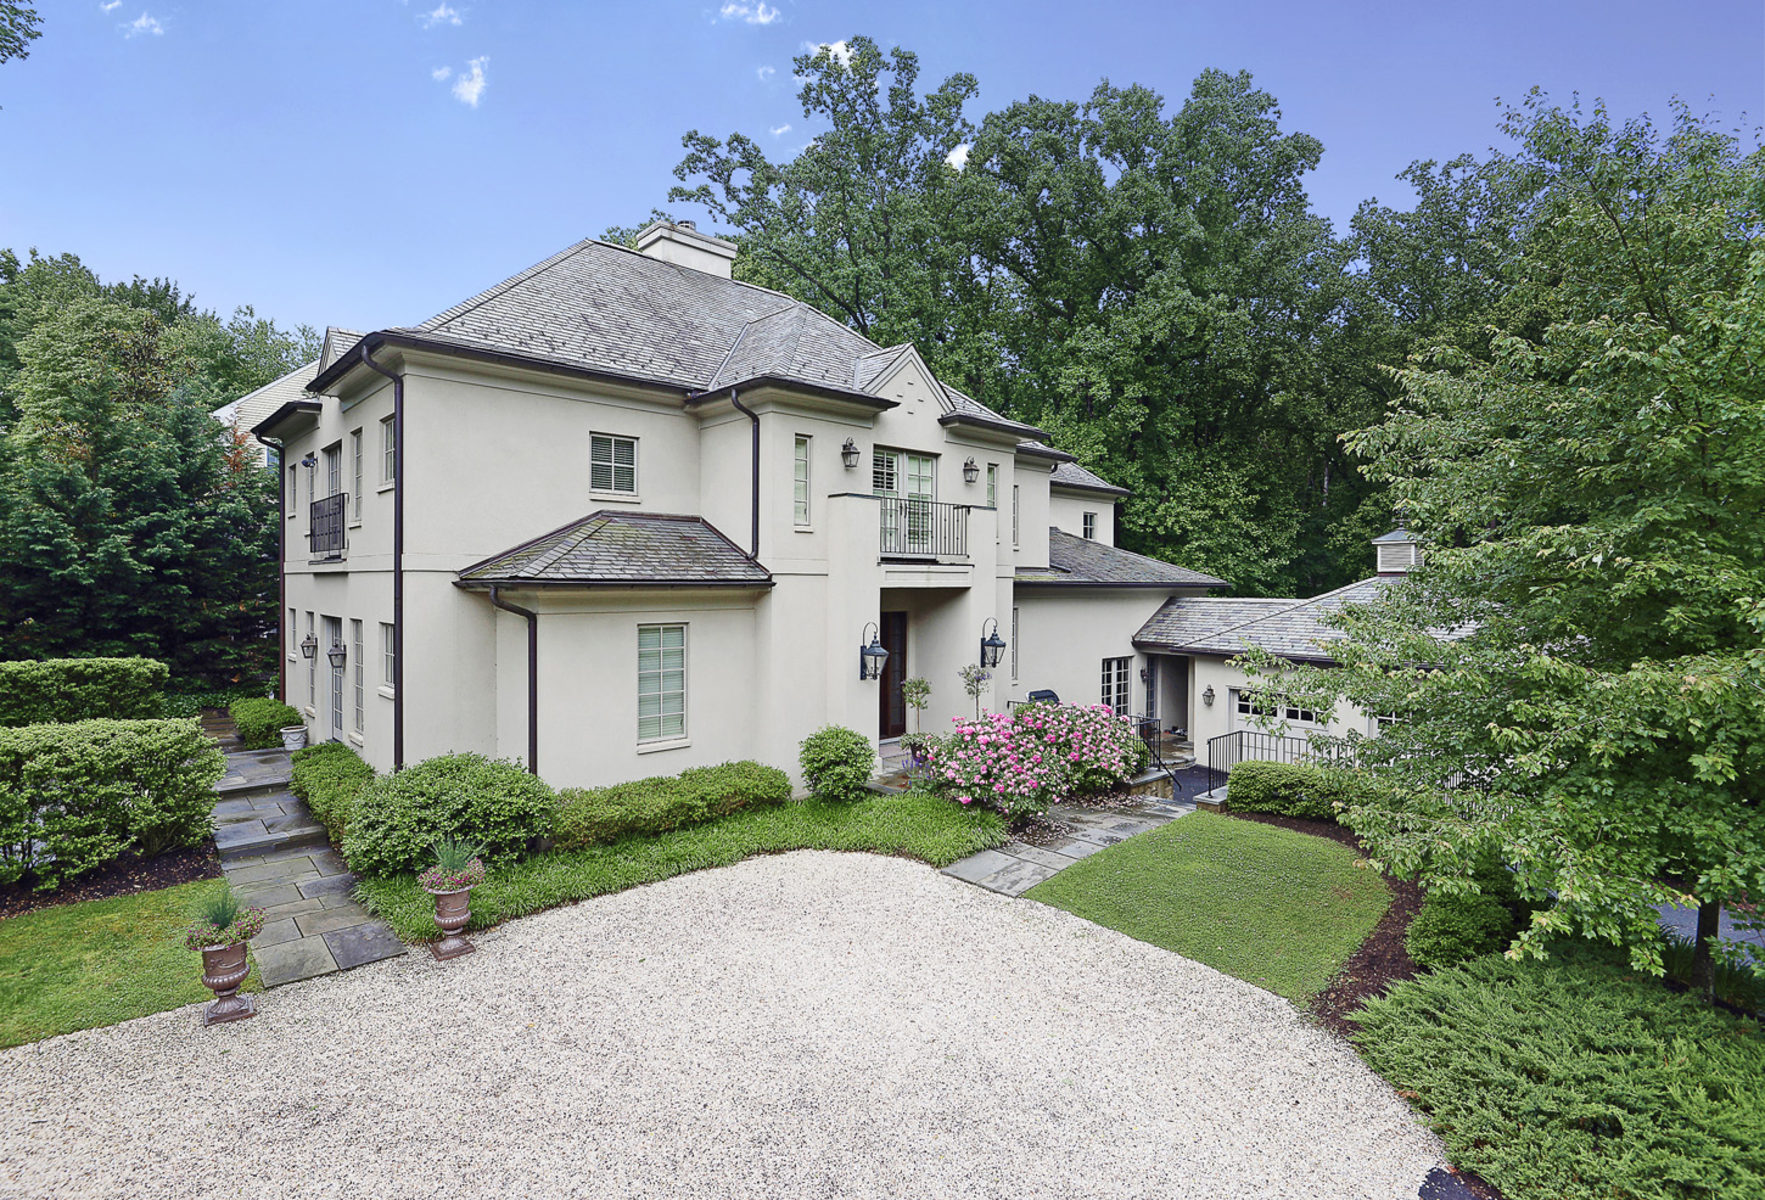 Single Family Home for Rent at 1318 Mccay Lane, Mclean 1318 Mccay Ln McLean, Virginia 22101 United States